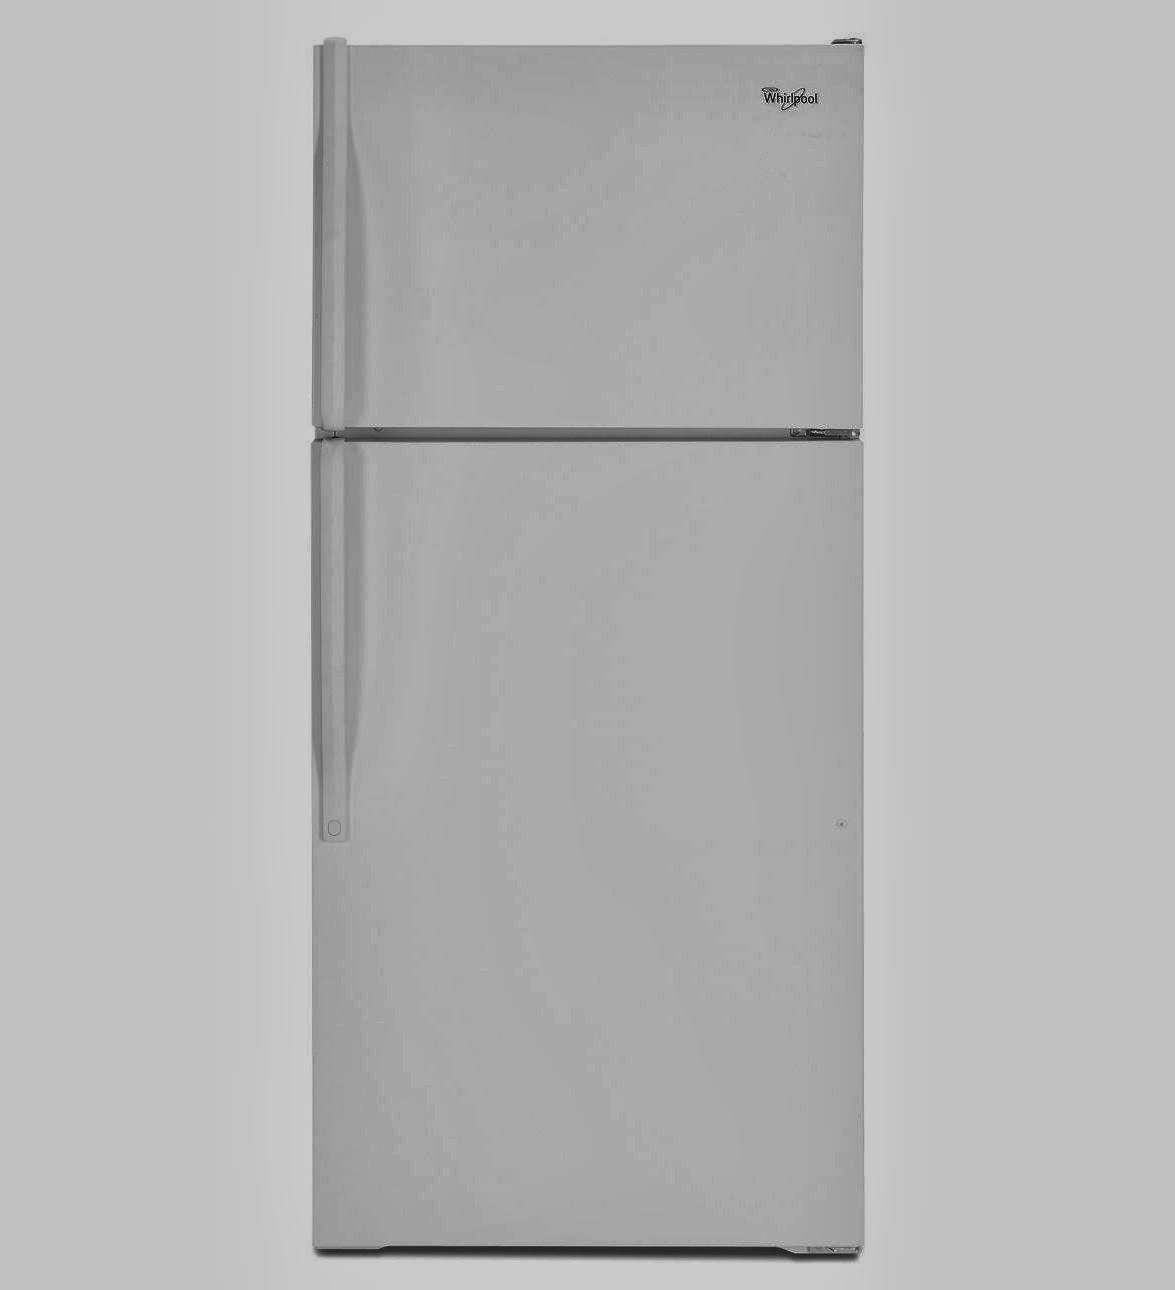 whirlpool refrigerator brand whirlpool w8txngmwq white. Black Bedroom Furniture Sets. Home Design Ideas